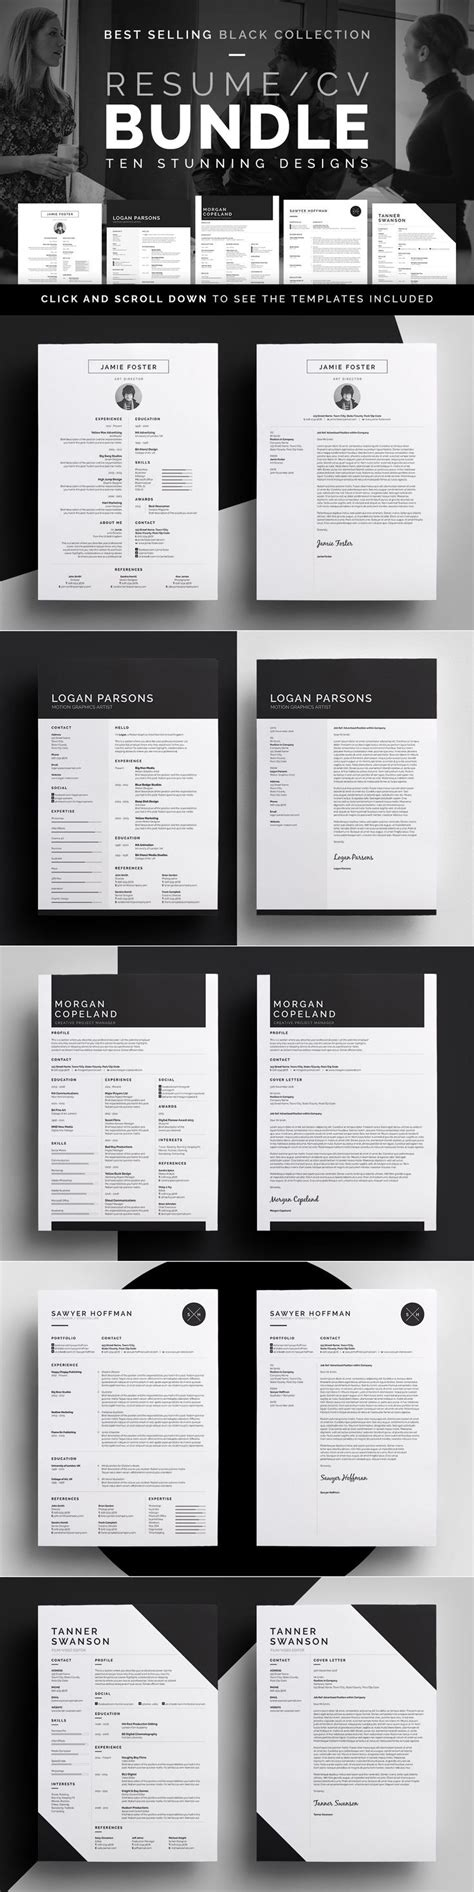 free cover letter template word free resume cover letter template